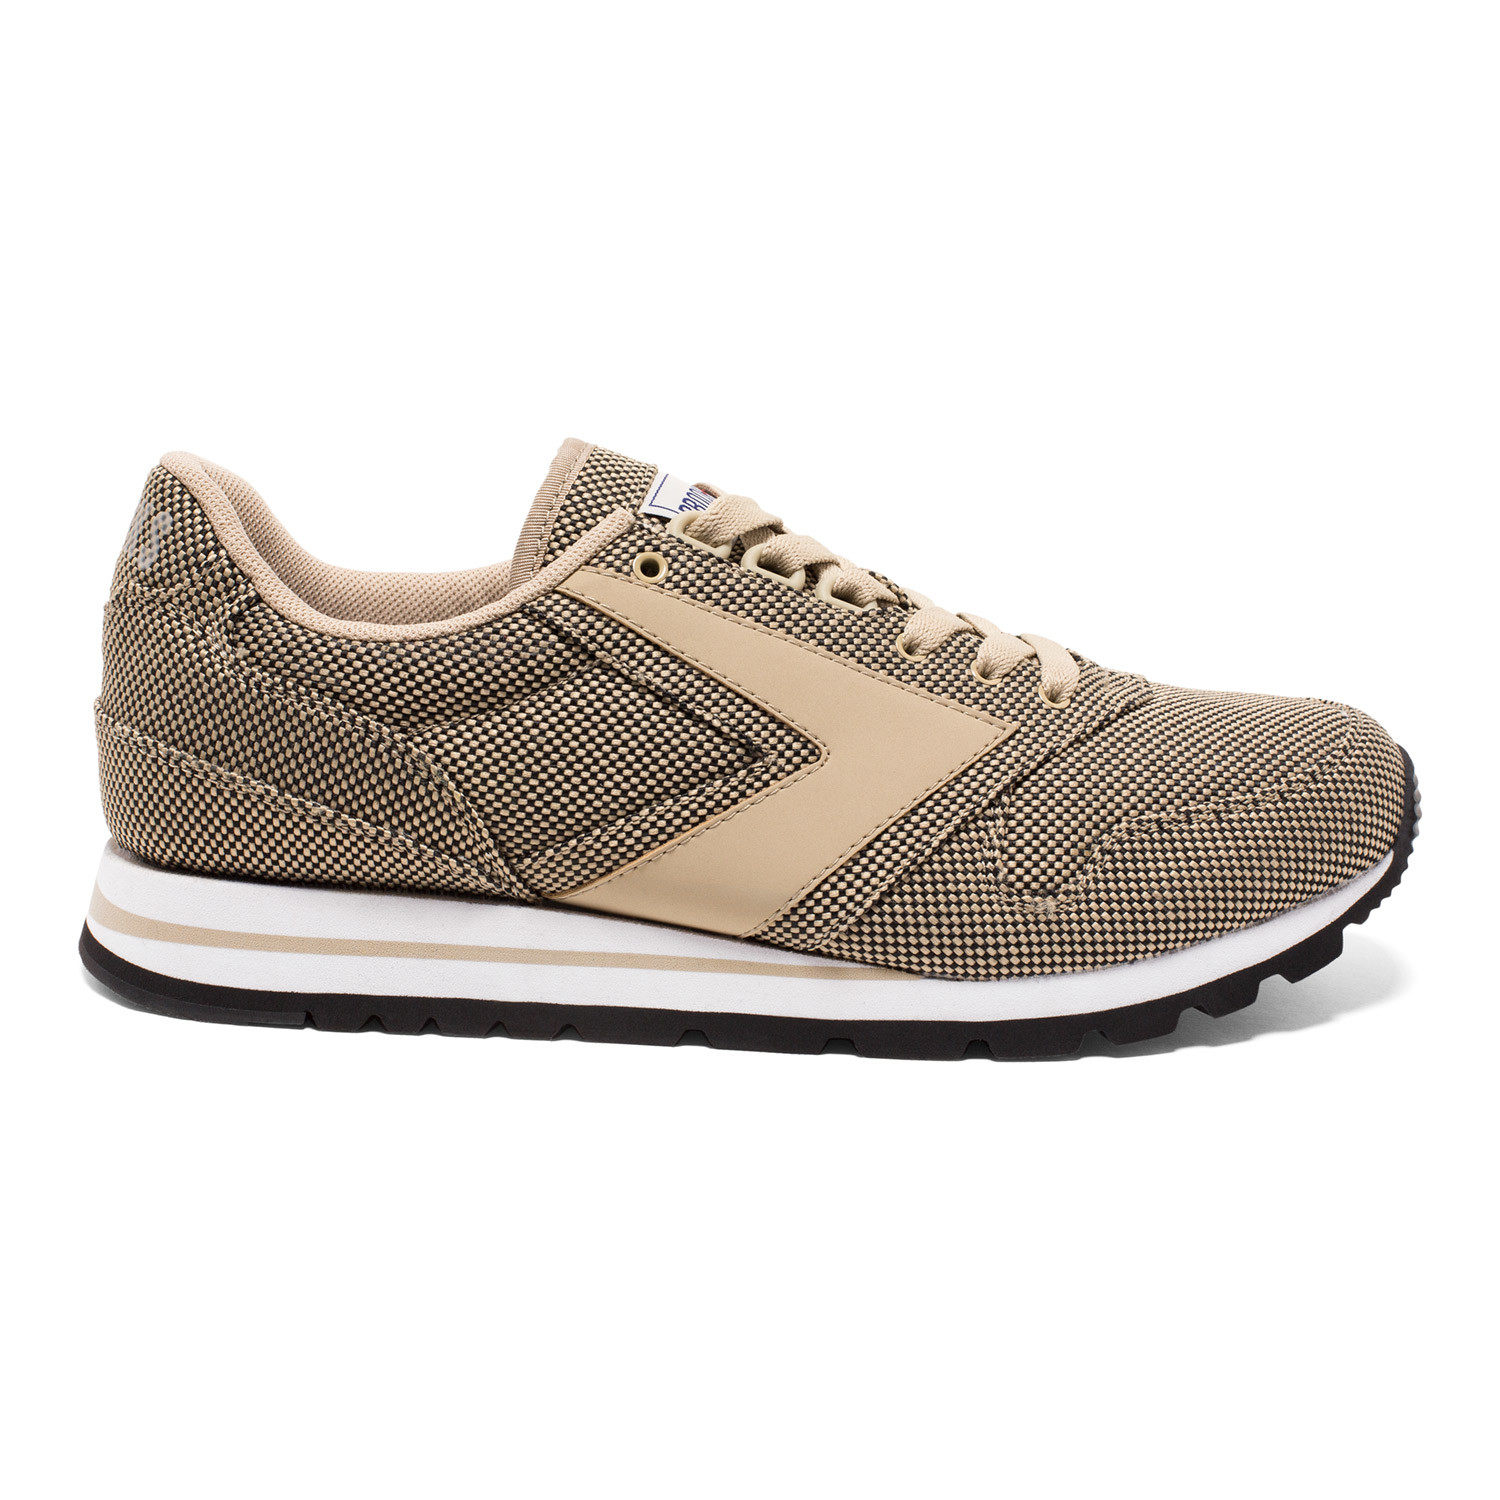 f6d98bf057c Brooks Heritage Shoes - Classic + Vintage-Inspired Athletic Shoes ...